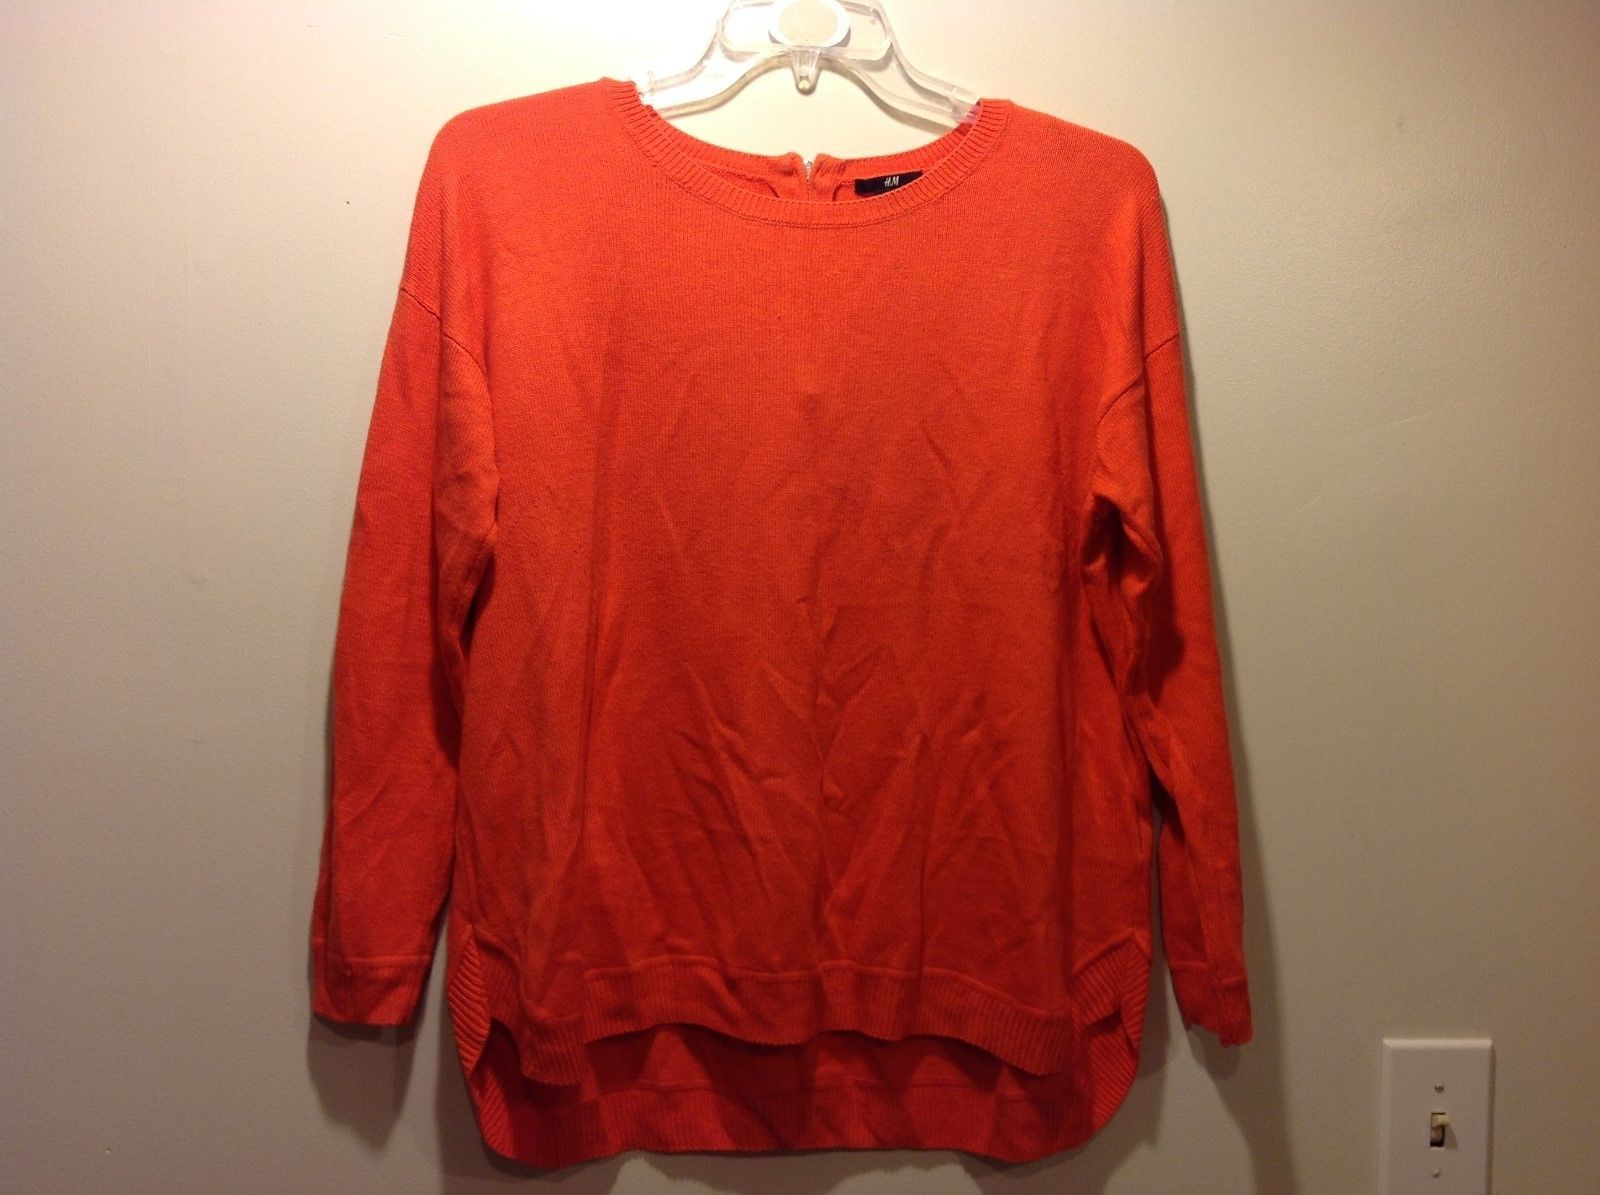 H&M Very BRIGHT Orange Sweater w Small Side Slits Sz Large